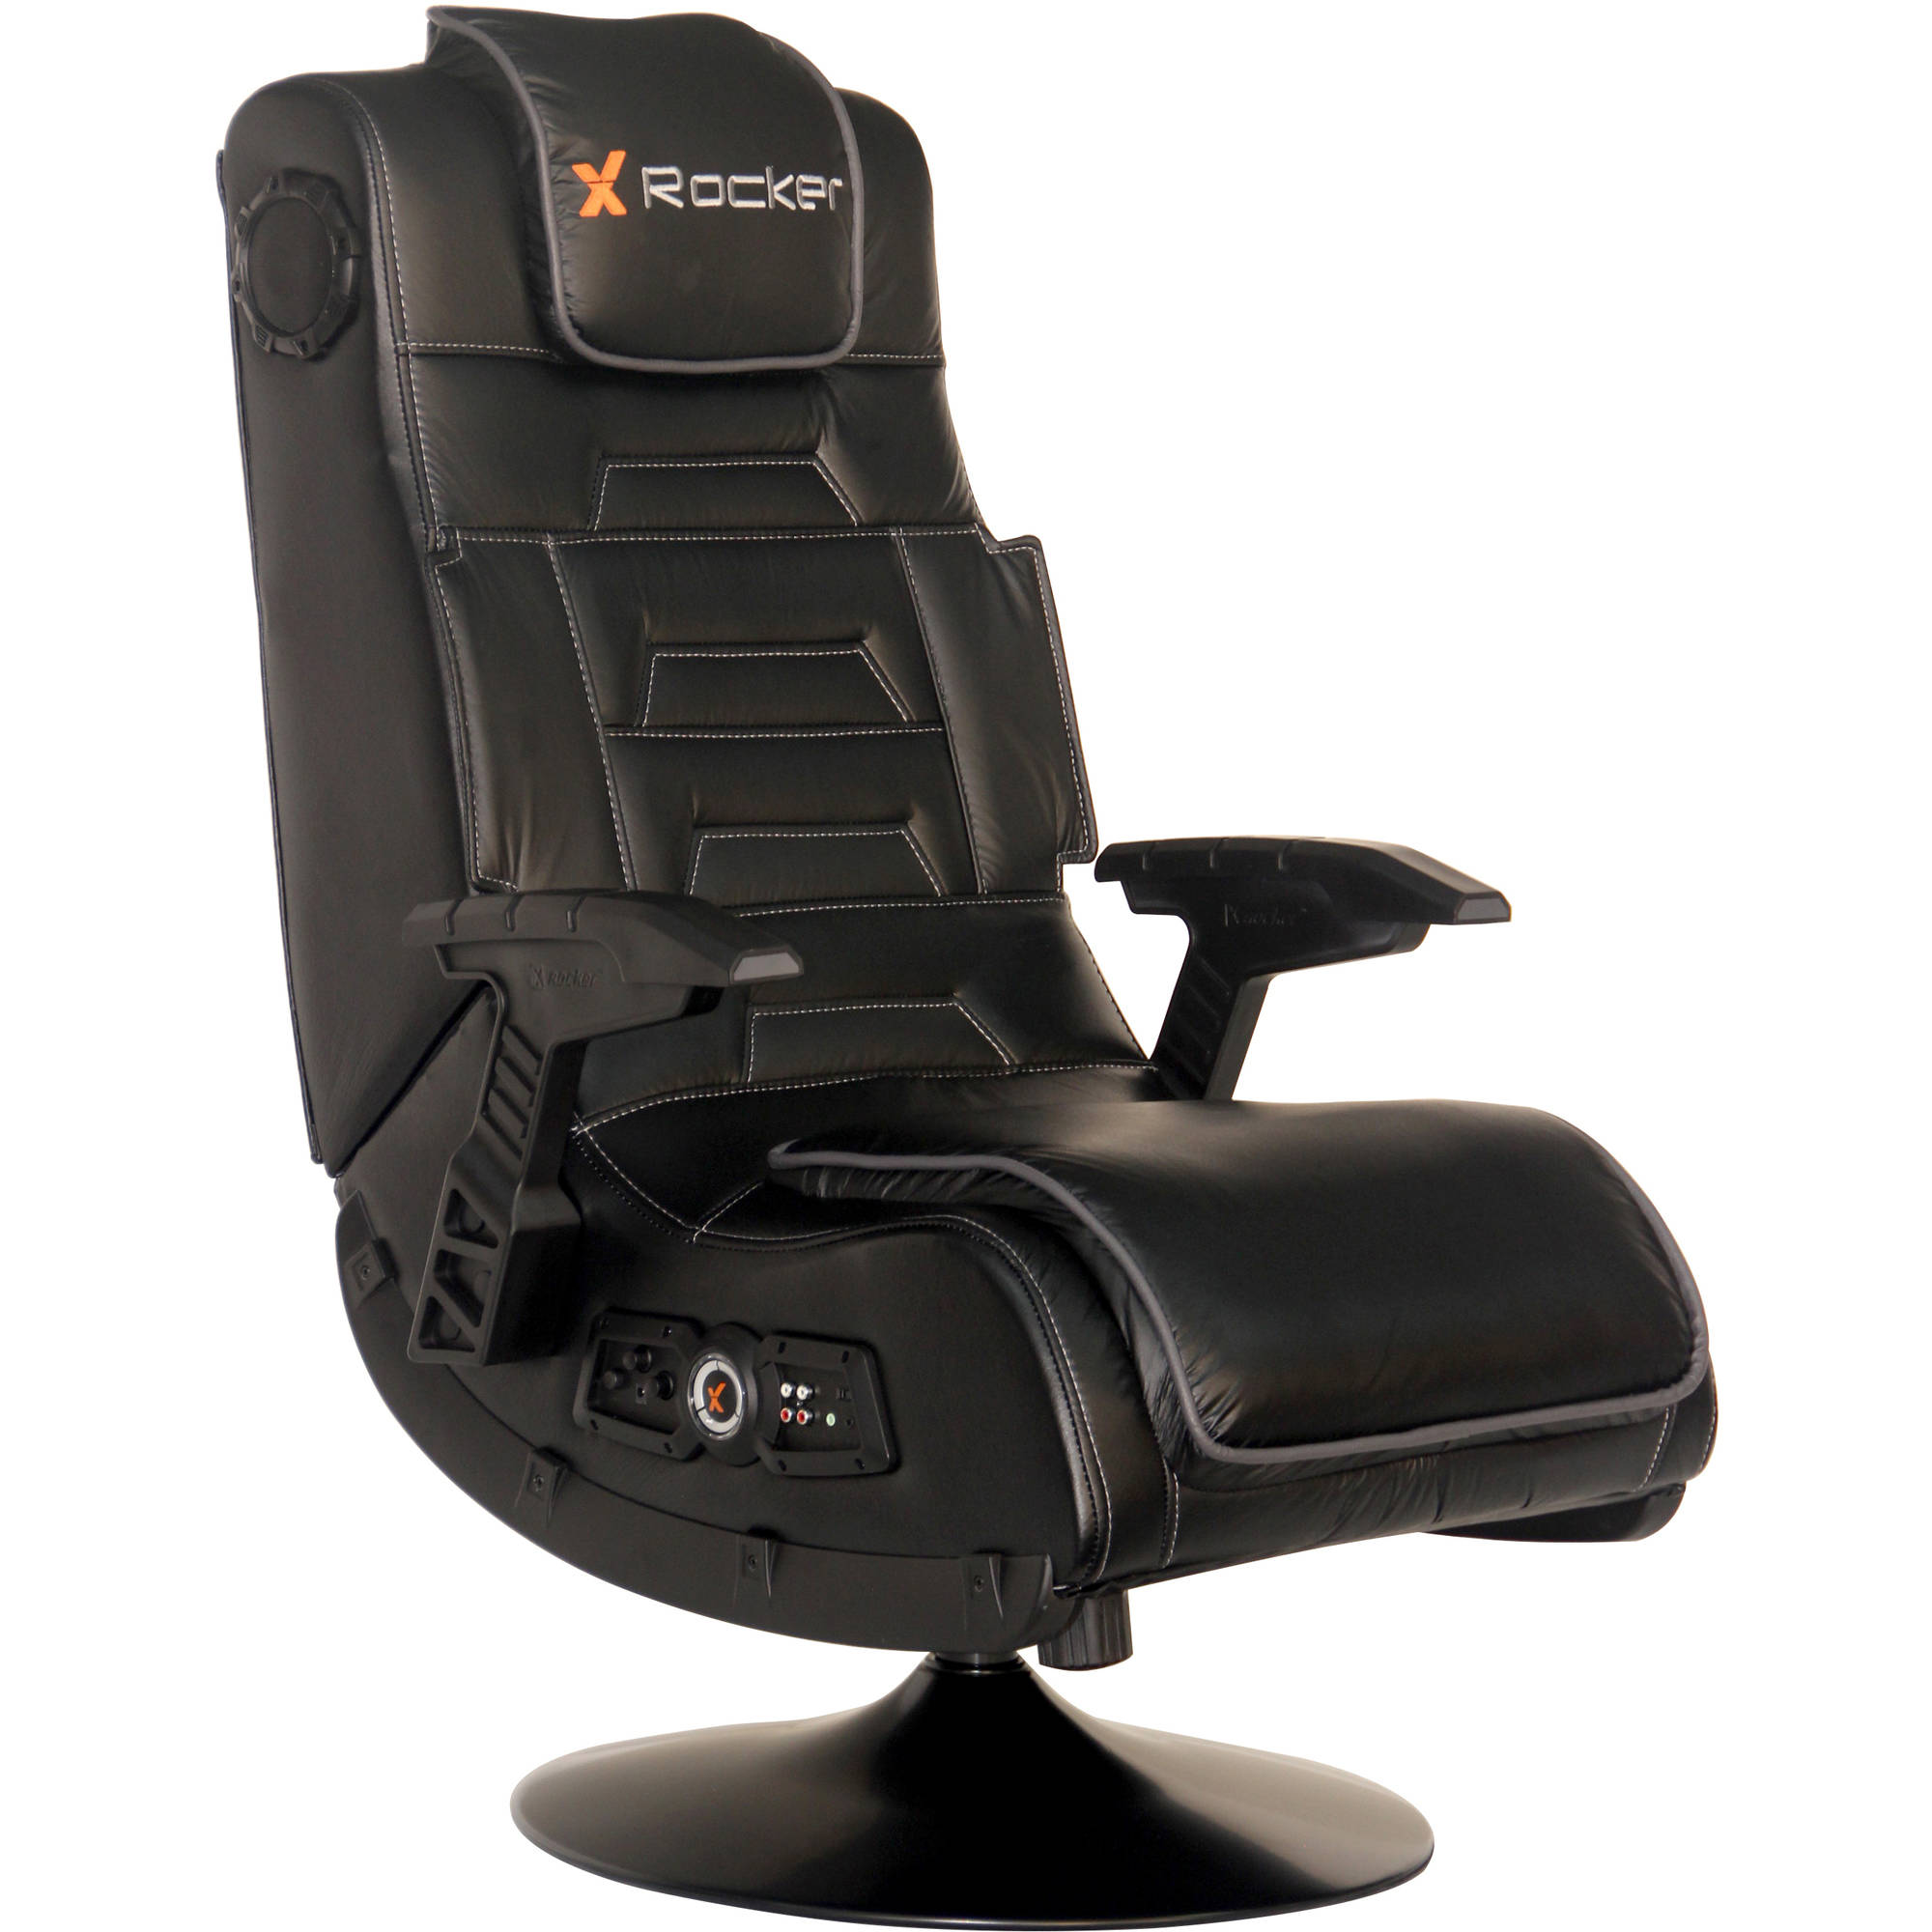 Ordinaire Product Image X Rocker Pro Series Pedestal Wireless Gaming Chair, Black,  51396